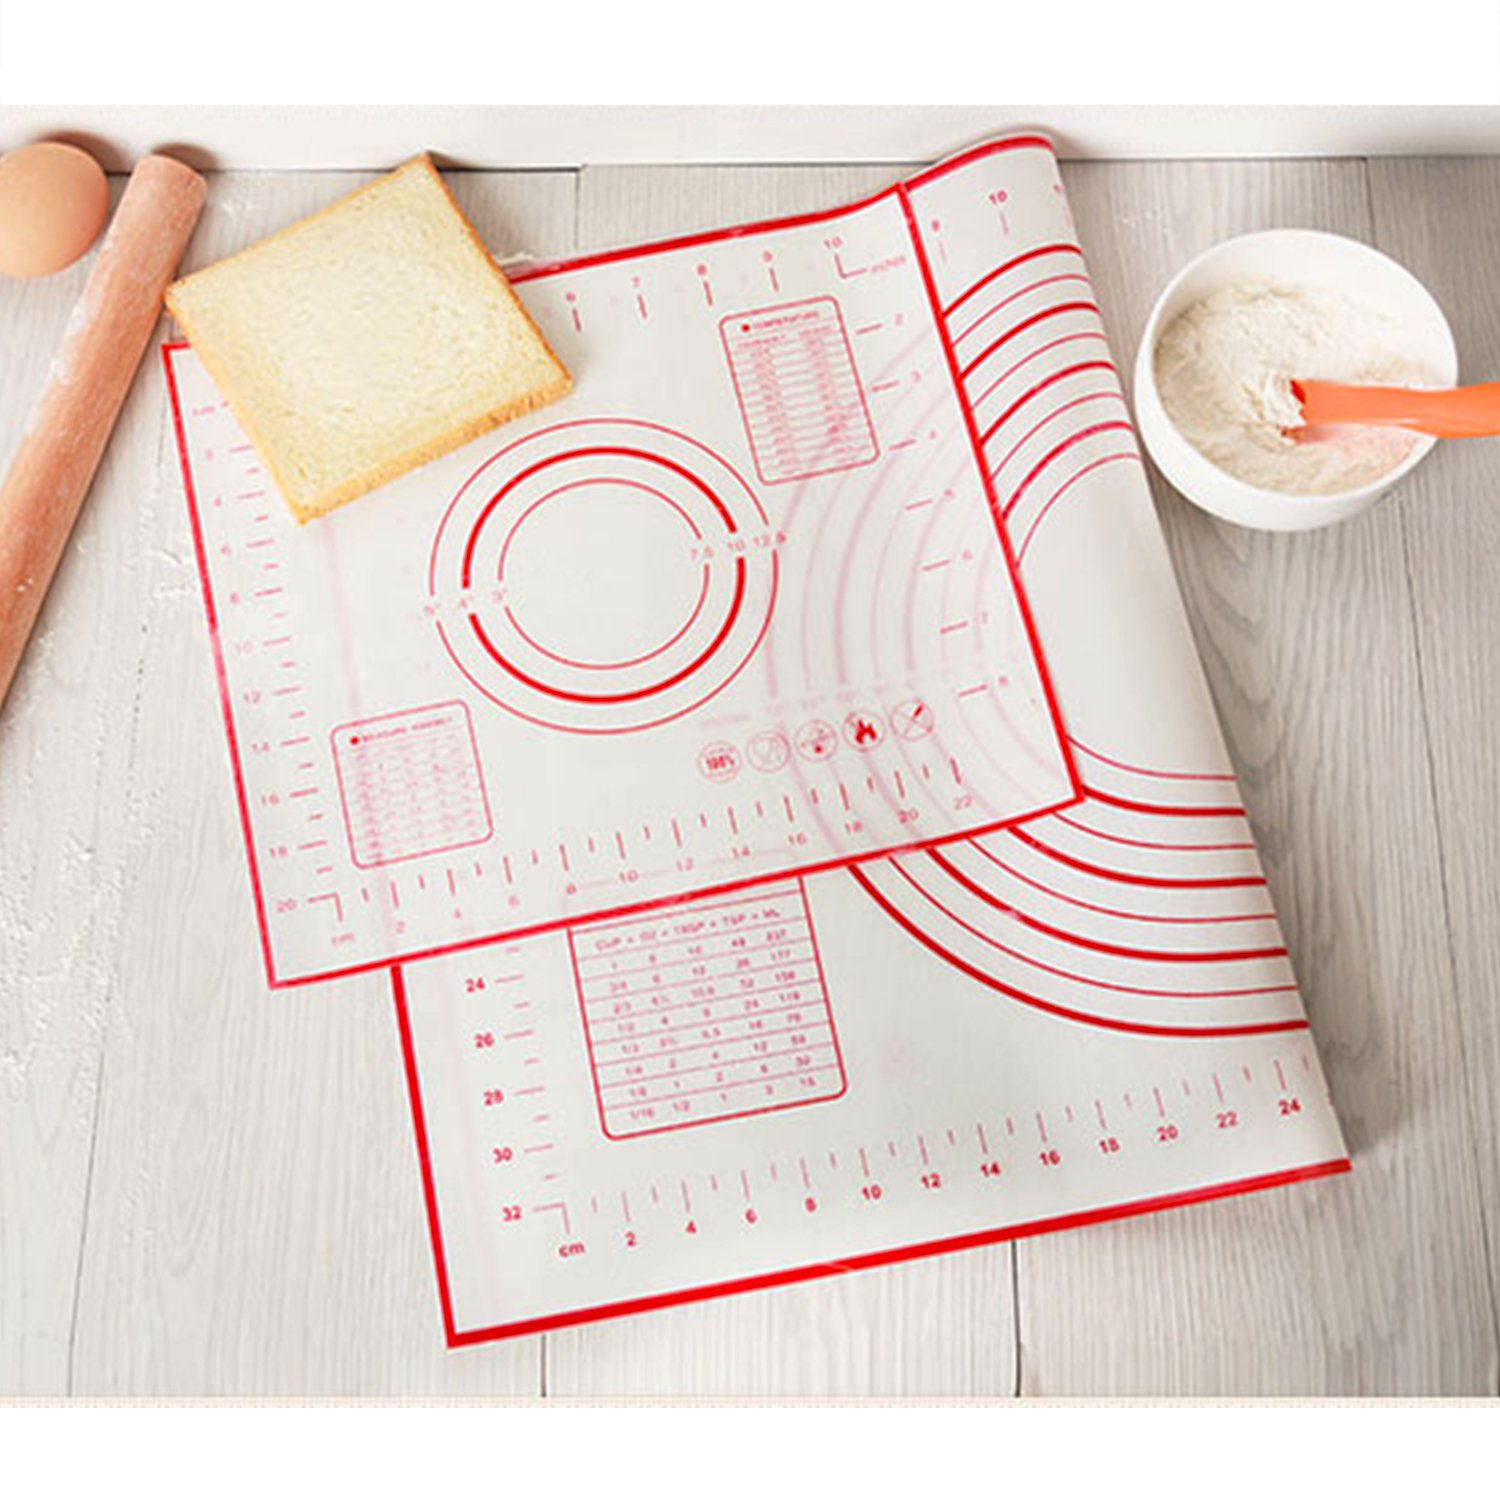 Non Stick Silicone Baking Mat 2 Pcs Set with Measurements High Temperature Resistance Pastry Mat FDA Approved by Lasten Lasten-US L123